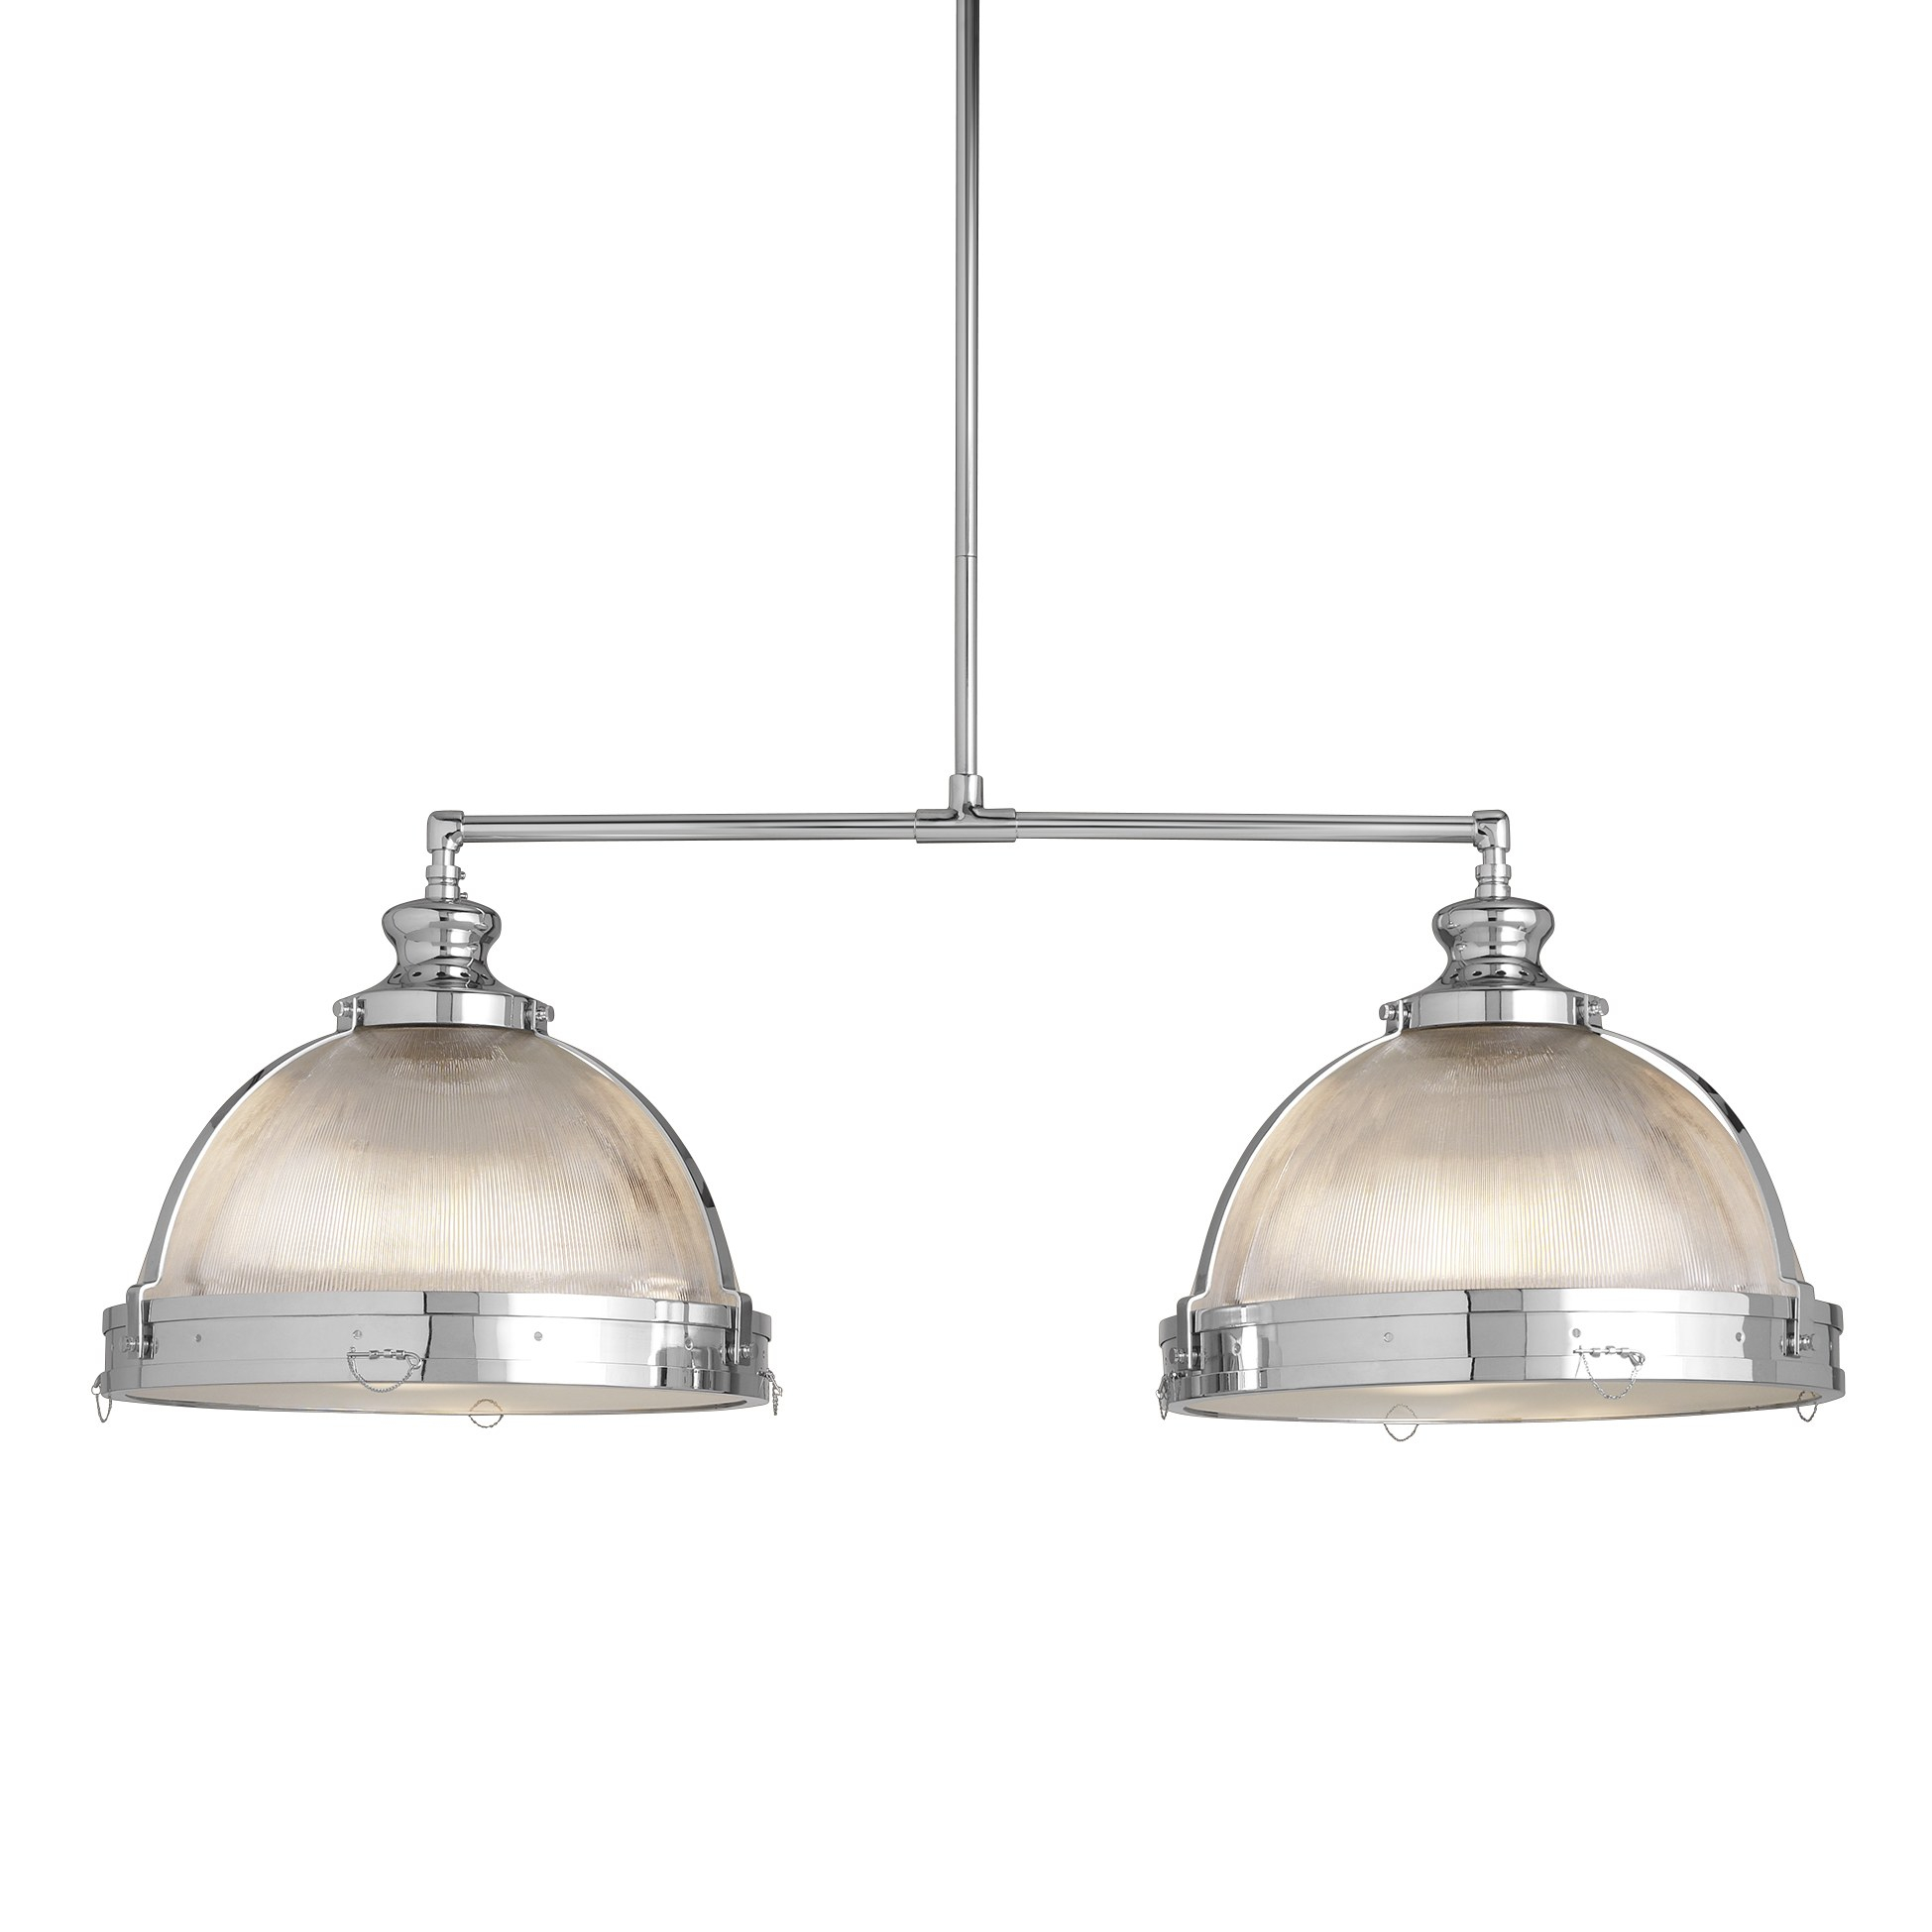 Best Kitchen Lighting Brands | Architectural Digest pertaining to Moris 1-Light Cone Pendants (Image 11 of 30)